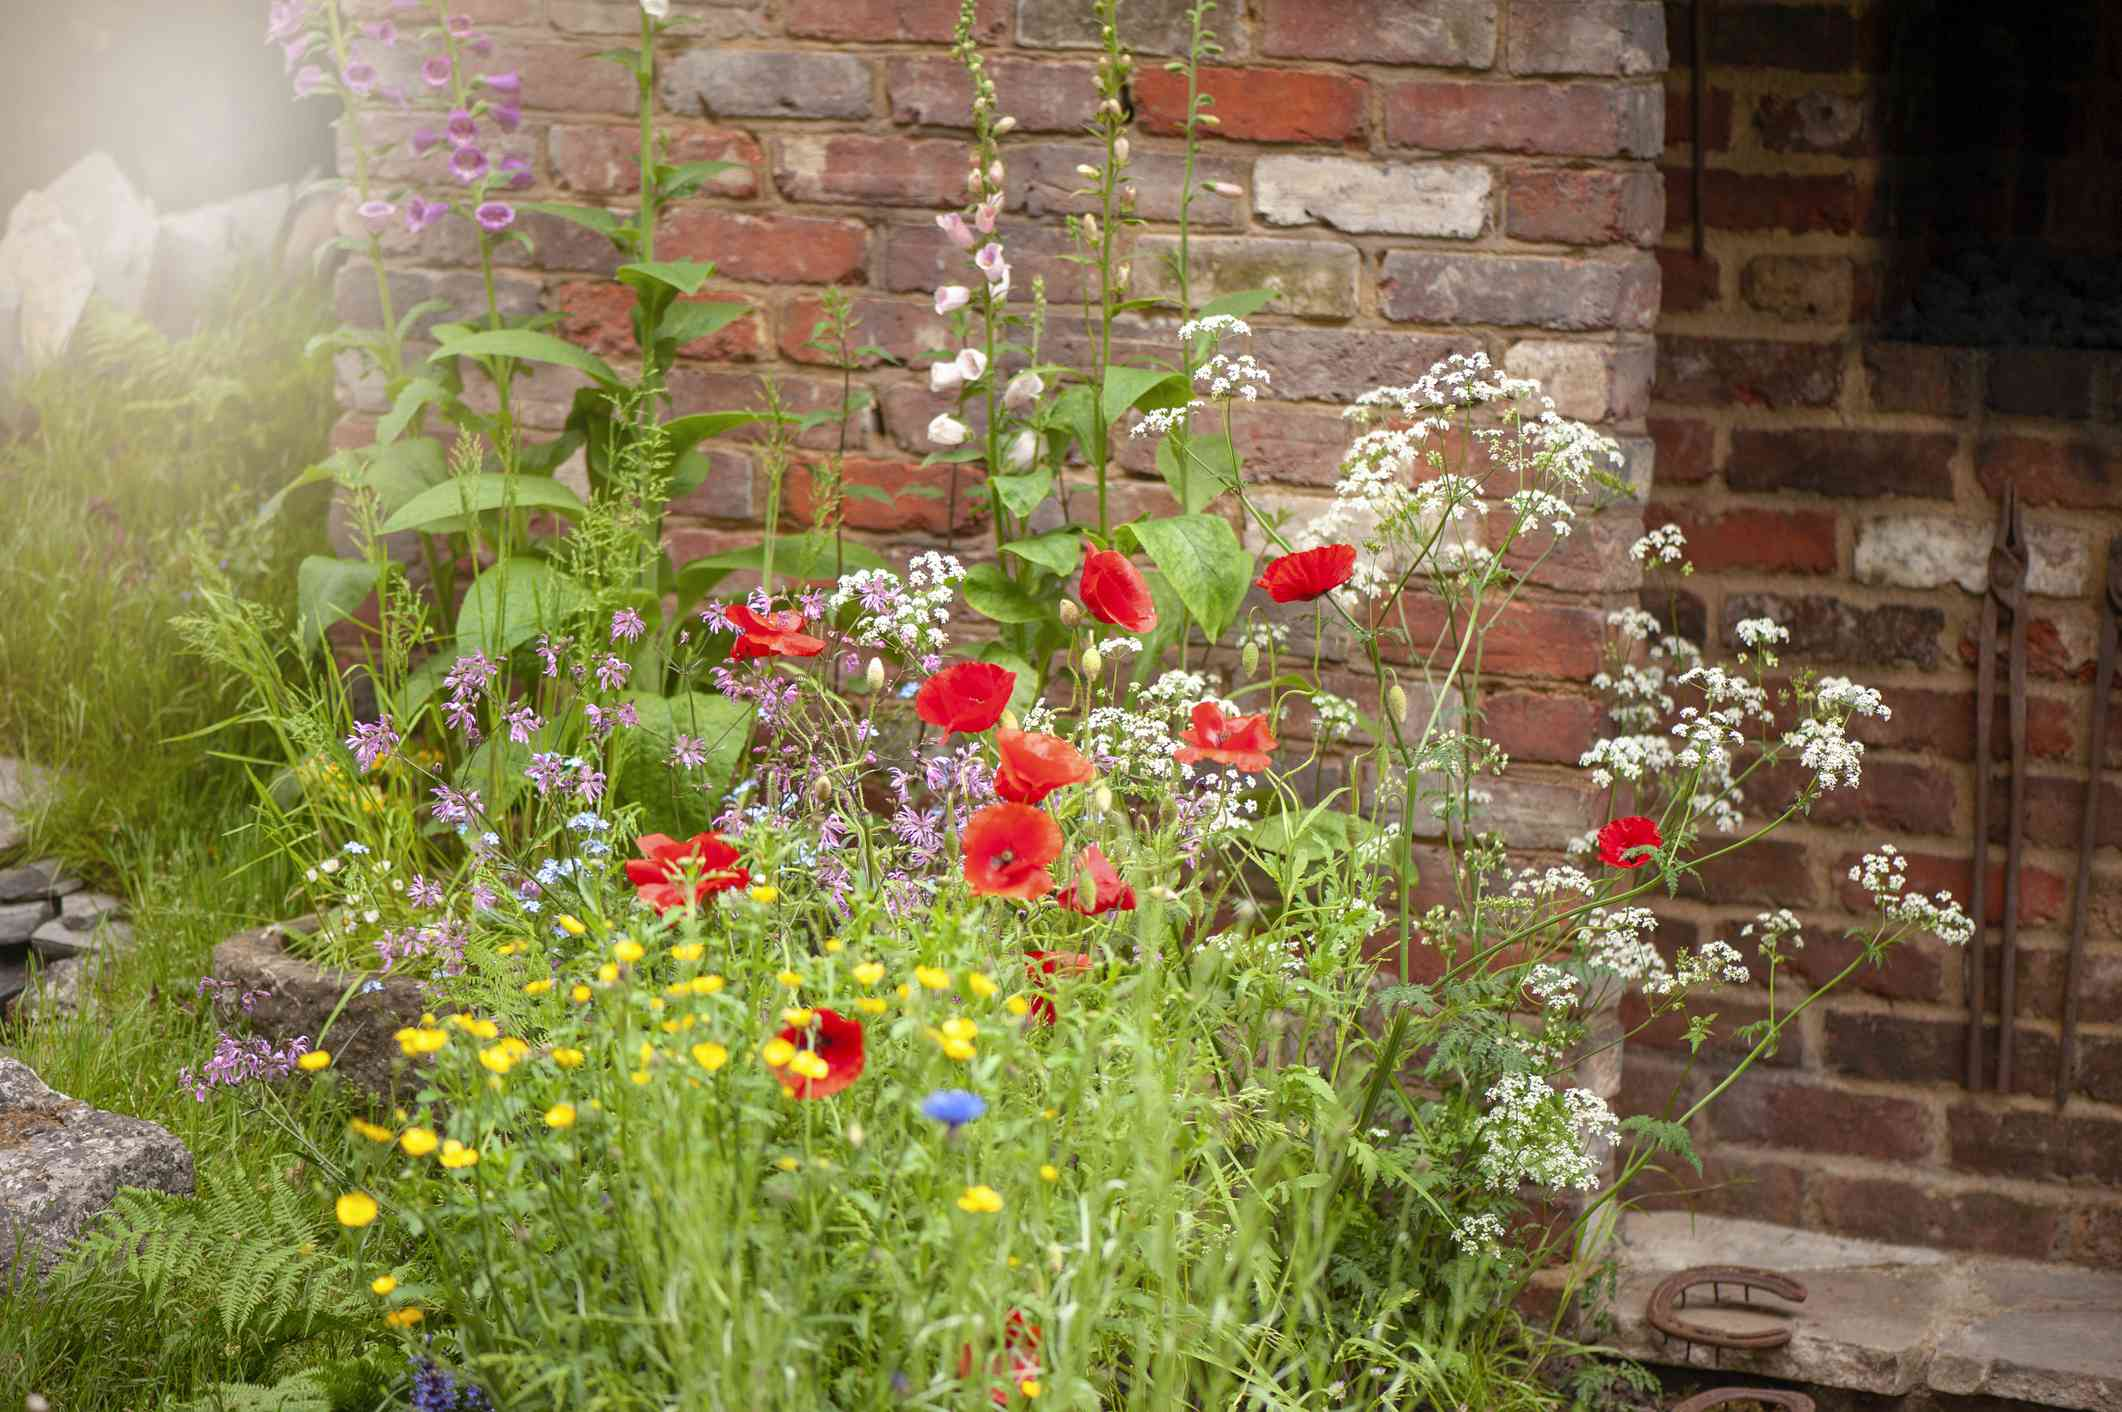 Wildflower garden in front of a brick wall.